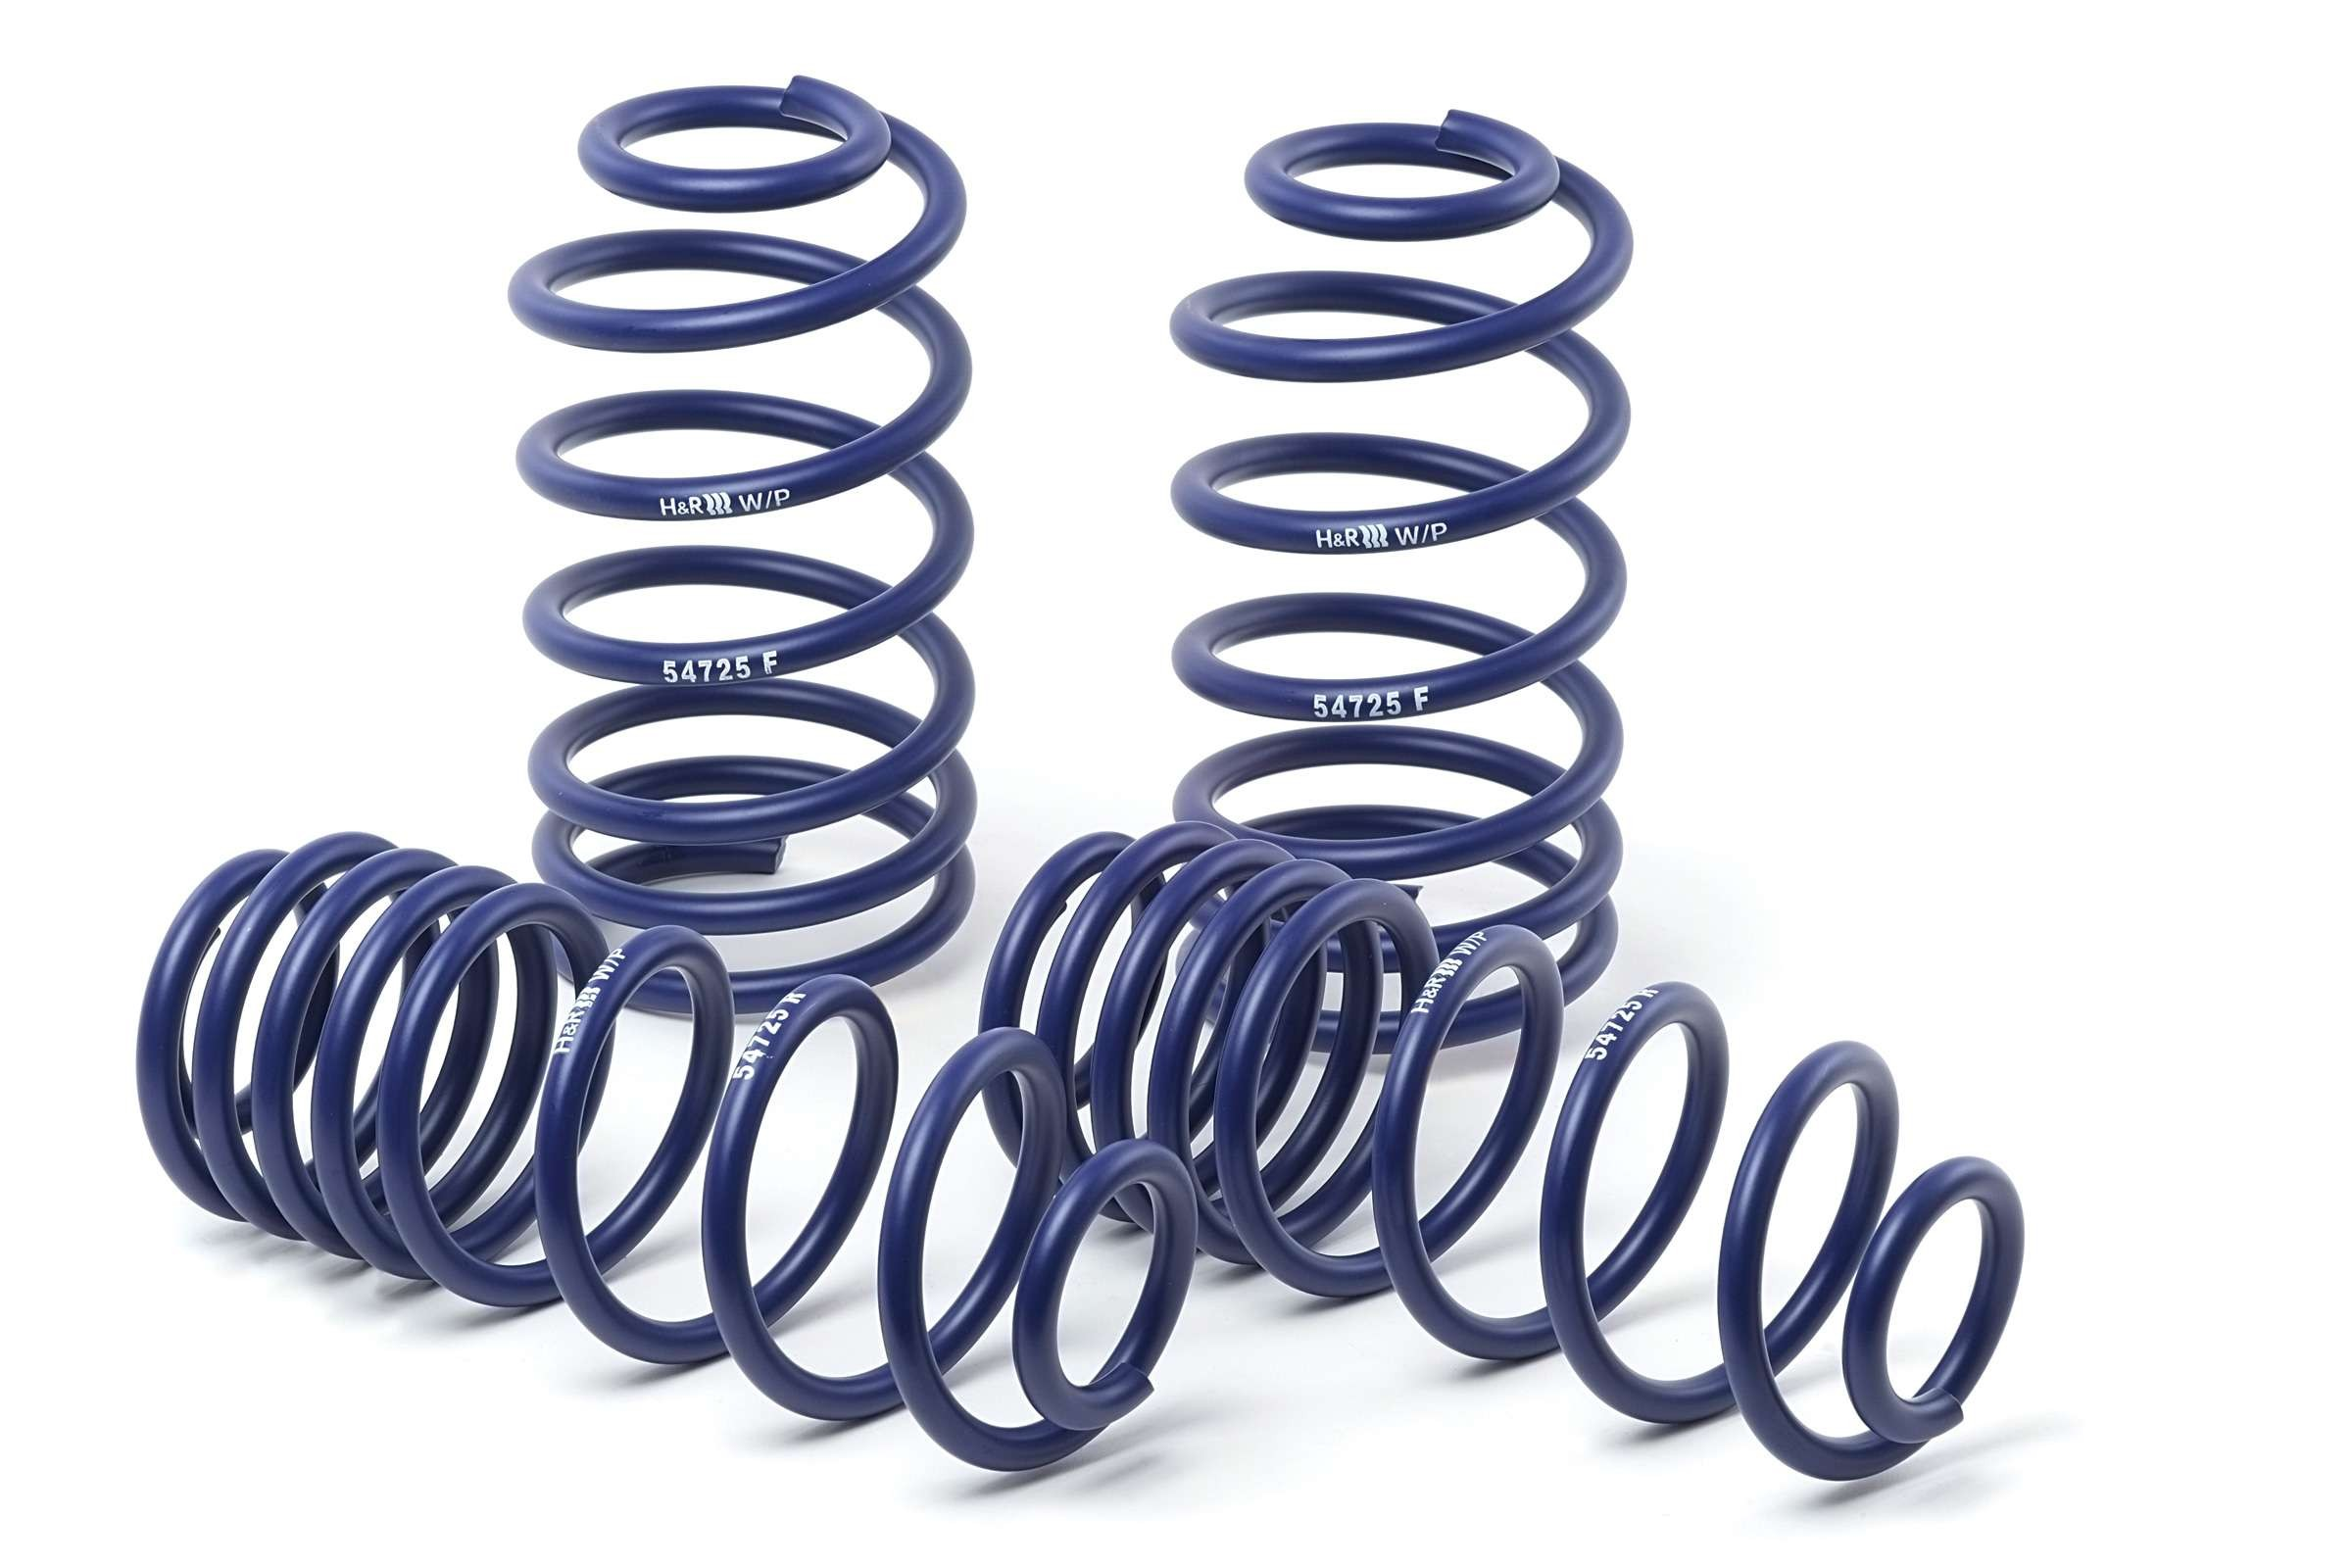 H&R Sport Springs Audi RS4 B8 - low version